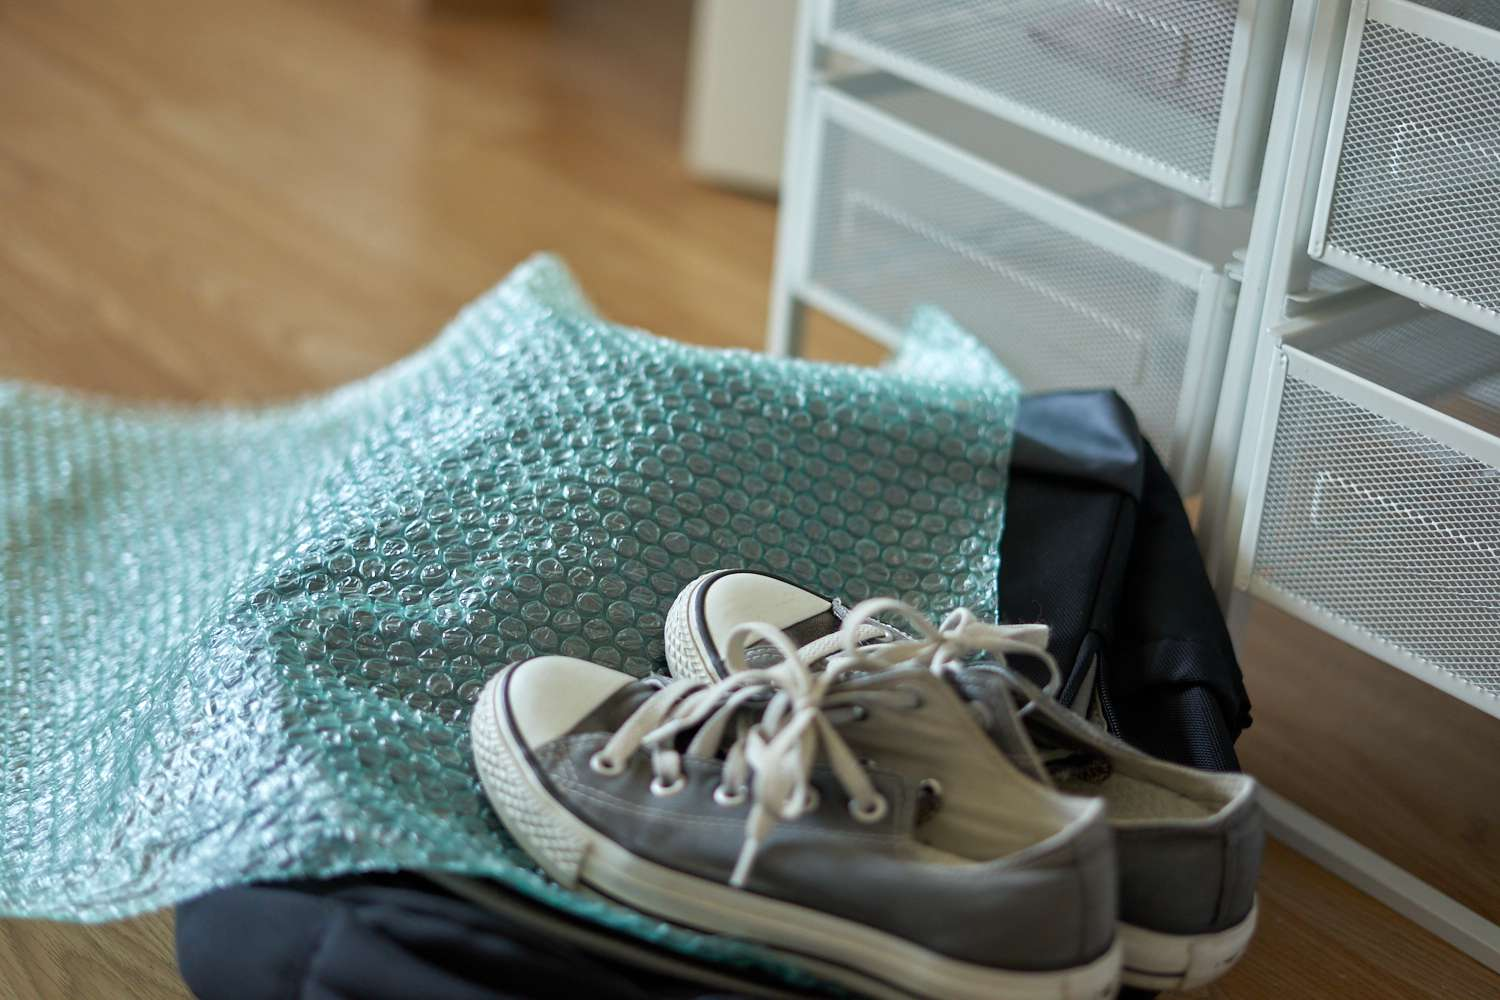 used piece of teal bubble wrap with old Converse sneakers and backpack